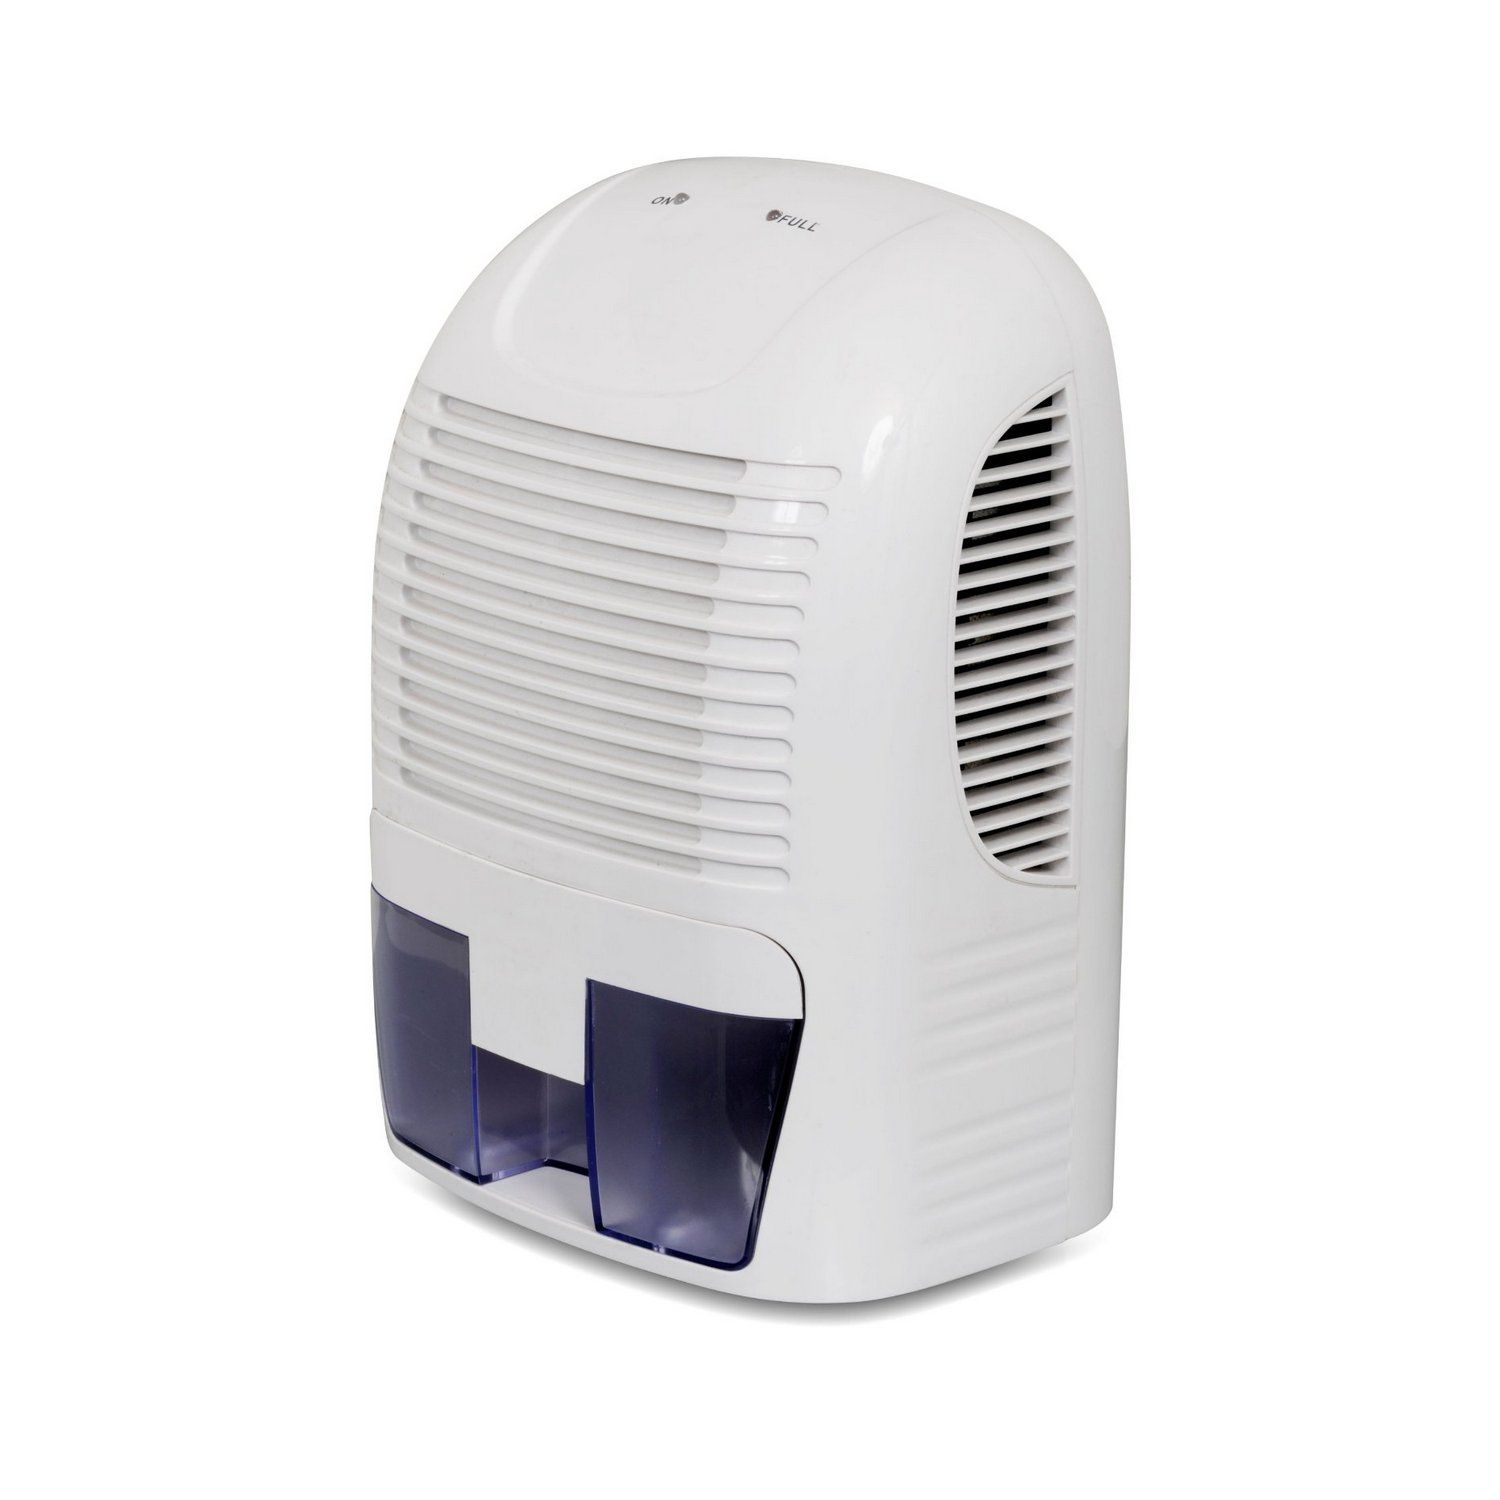 A Small Dehumidifier For Bathroom So Fast | Dehumidifiers ...